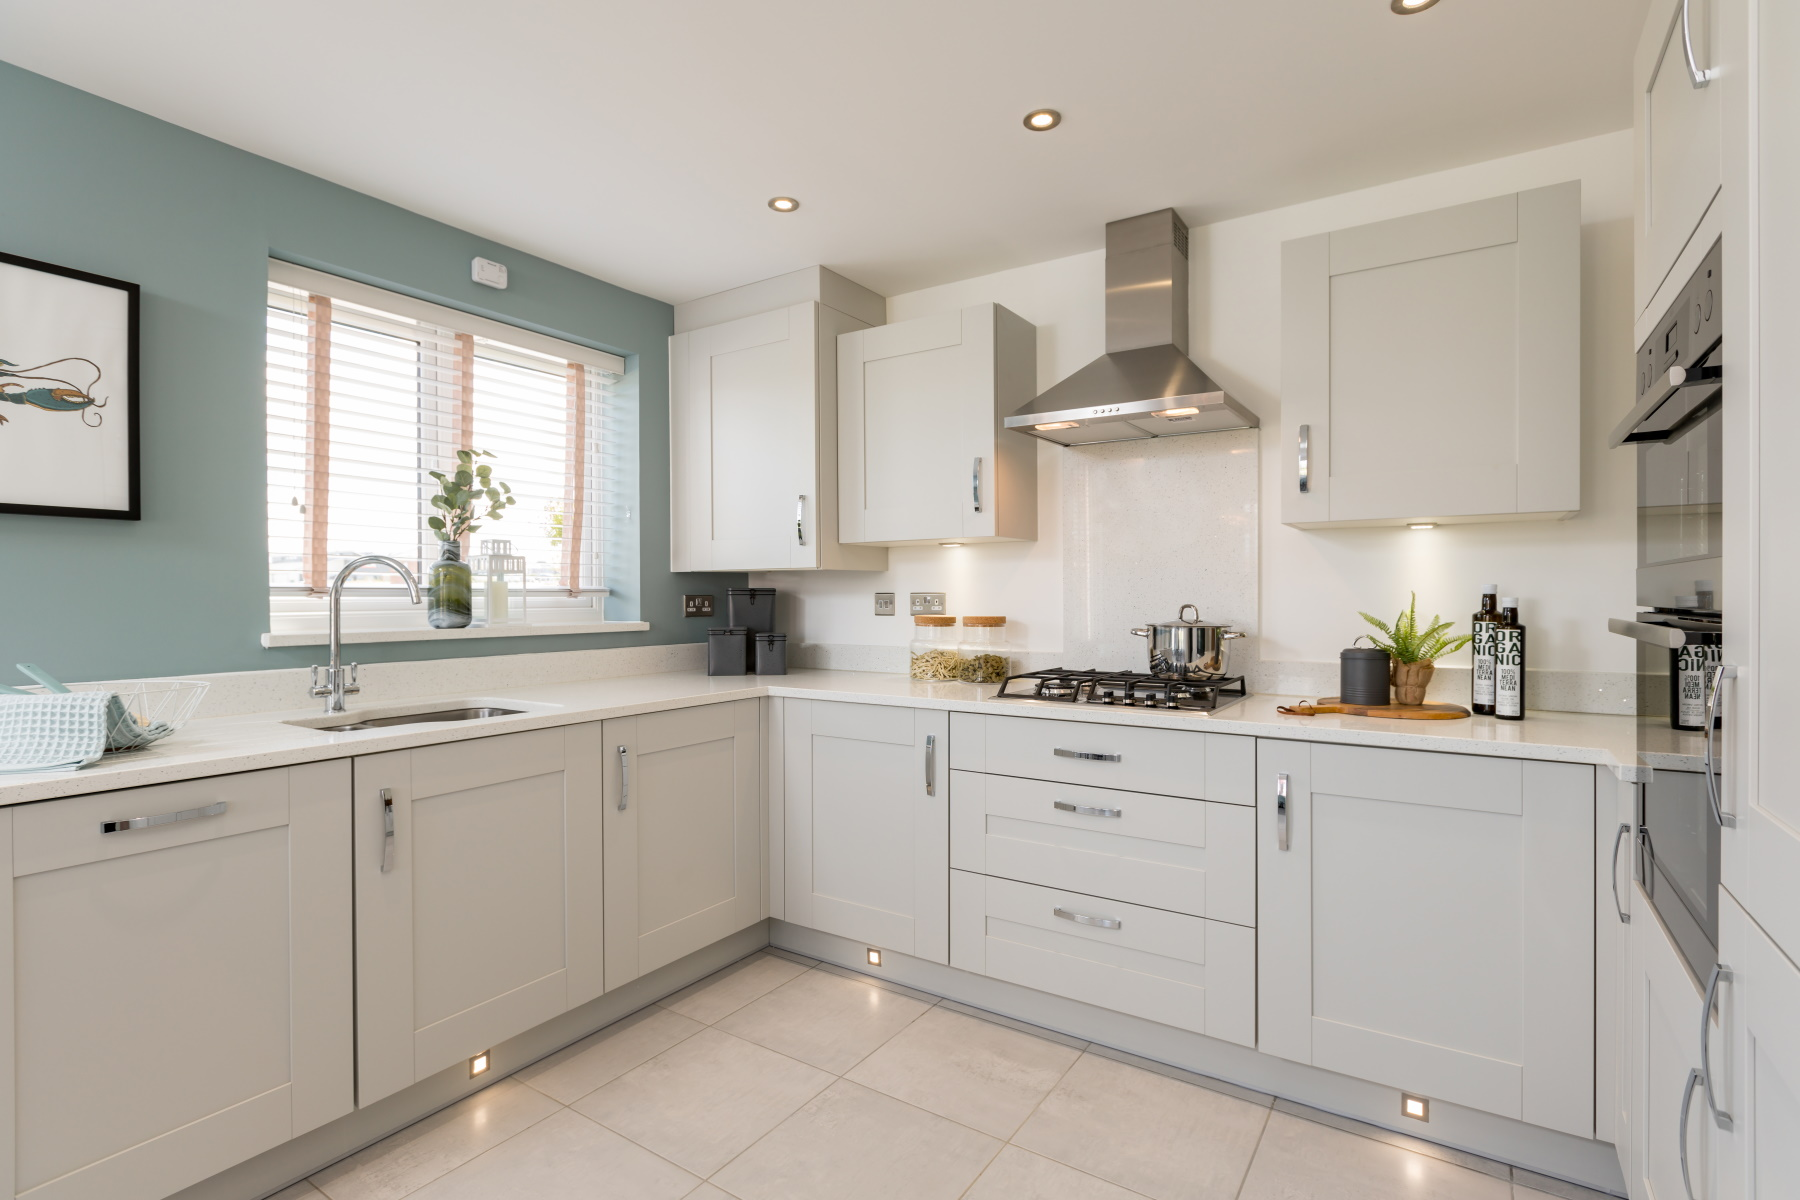 Taylor Wimpey Exeter - Mayfield Gardens - Kingdale example kitchen